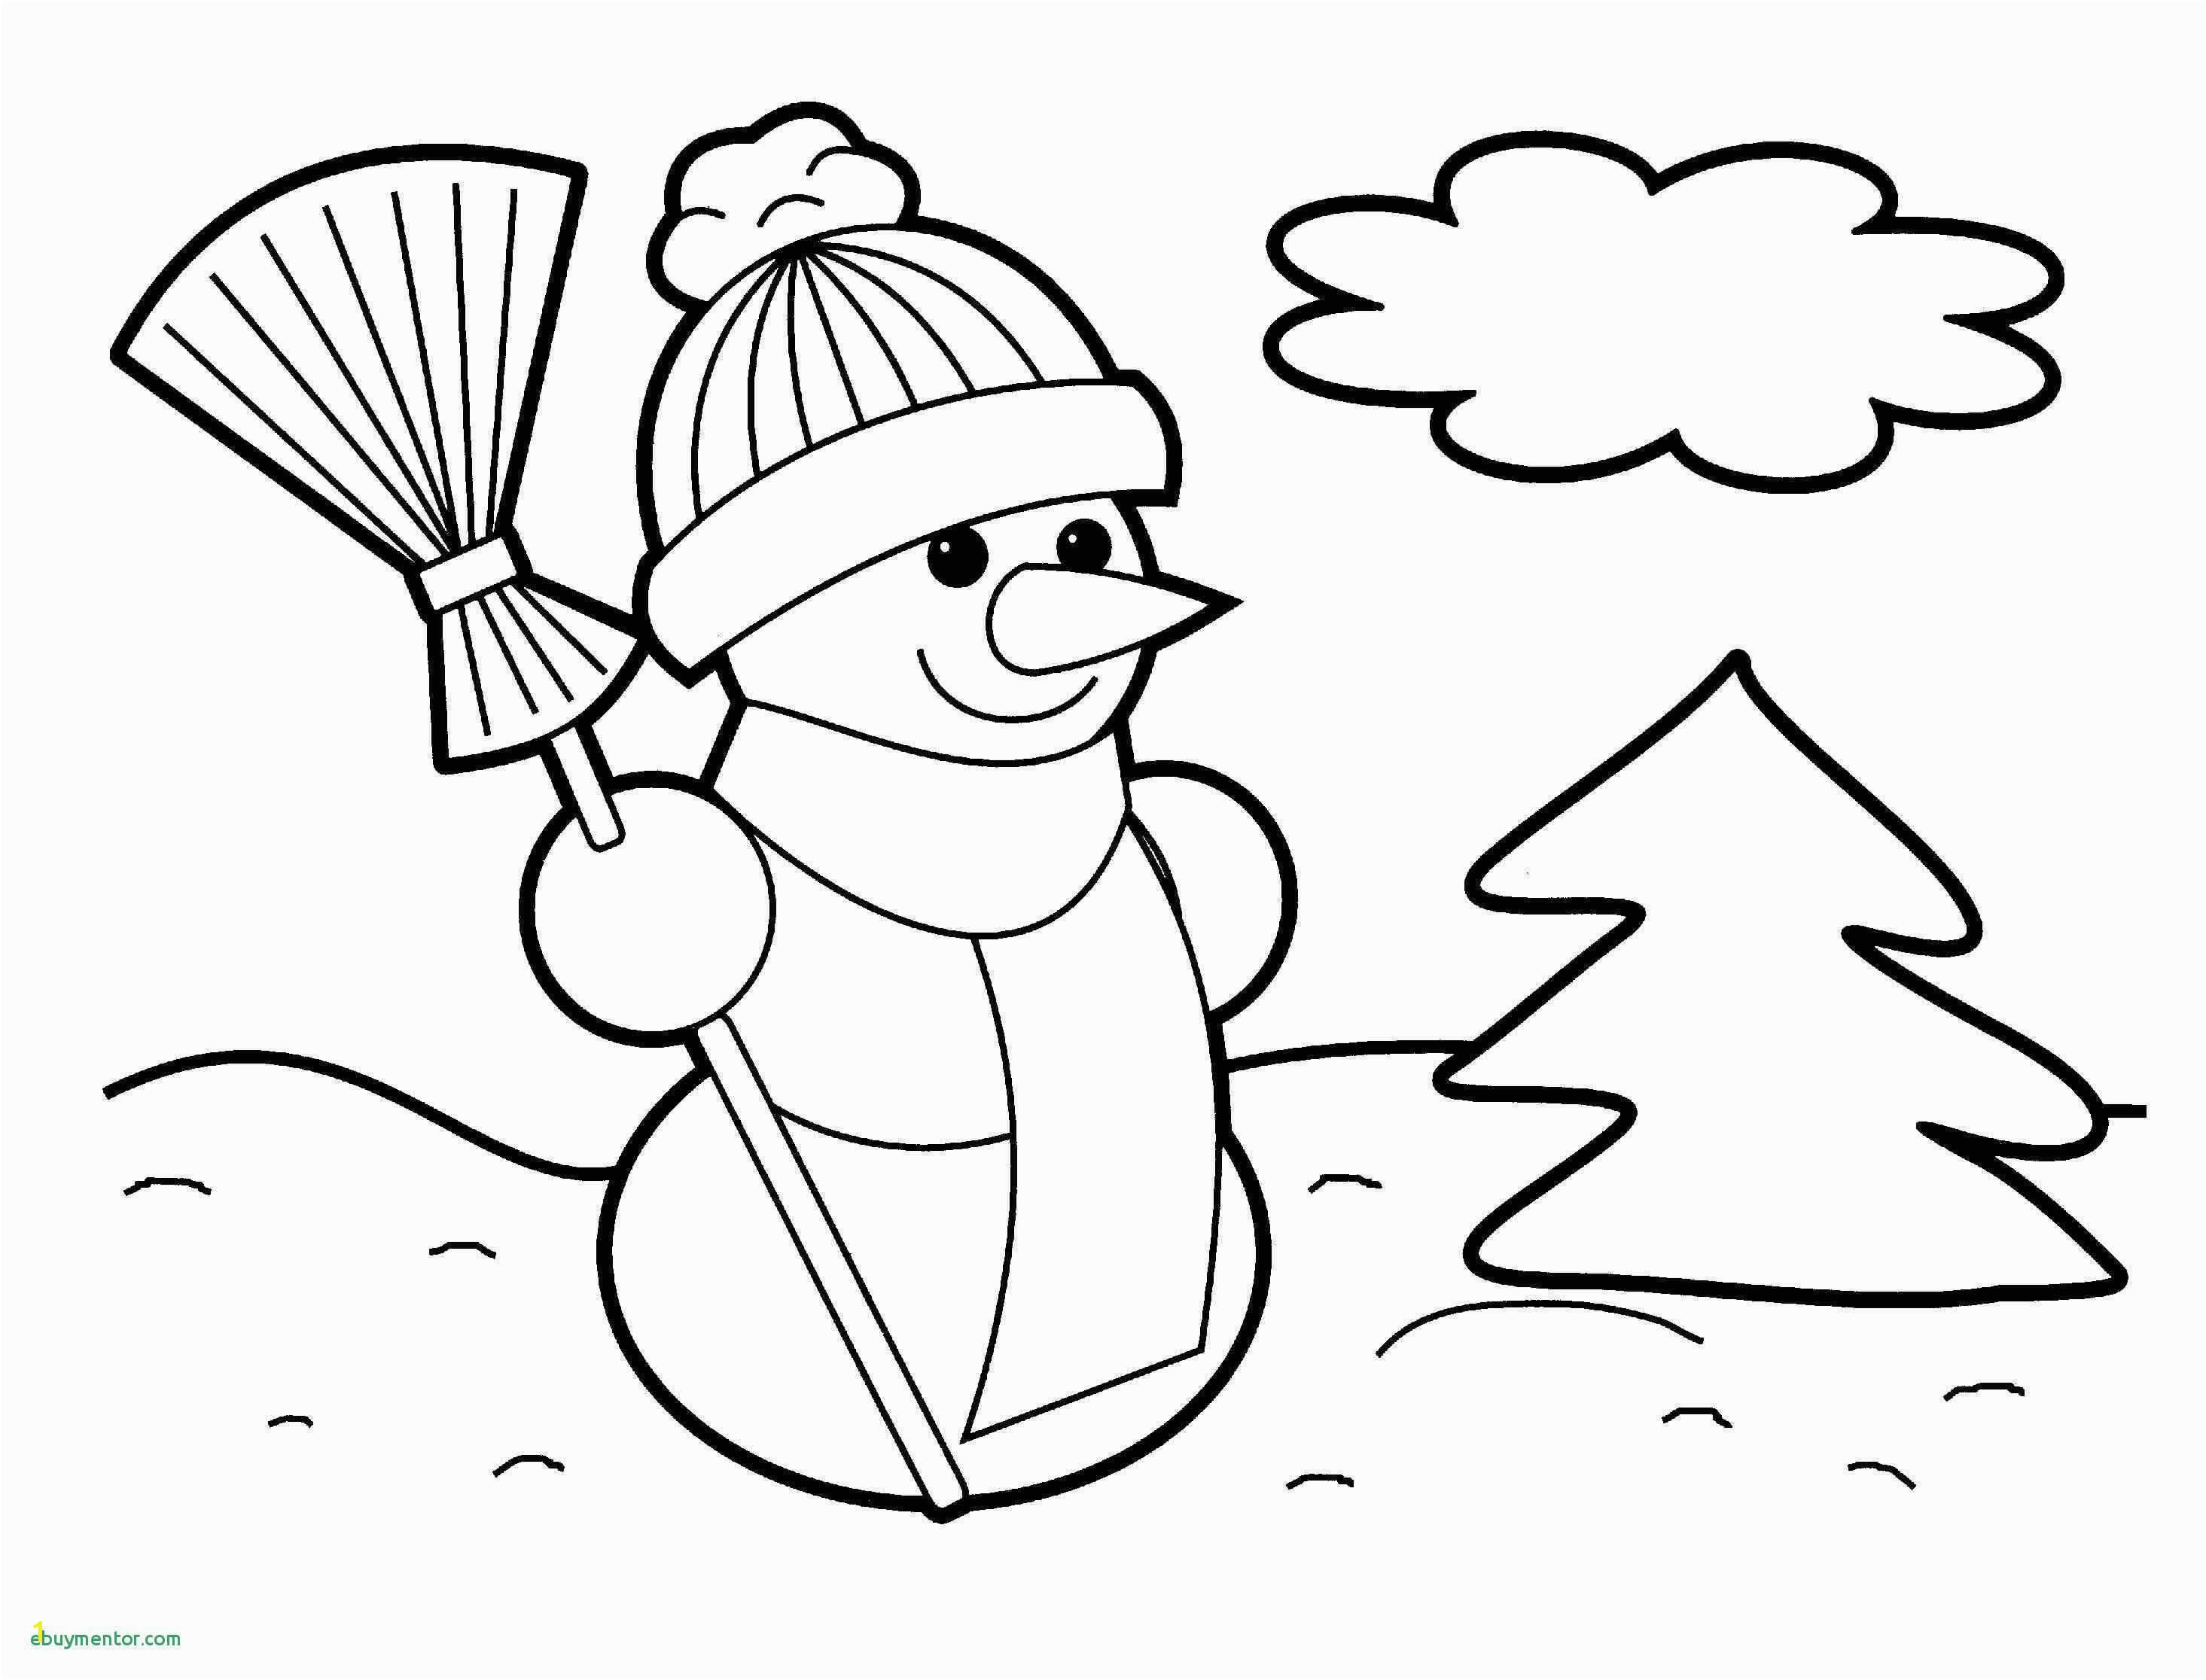 Christmas ornament Coloring Pages Free Cool Od Dog Coloring Pages Free Colouring Pages Cool Coloring Pages